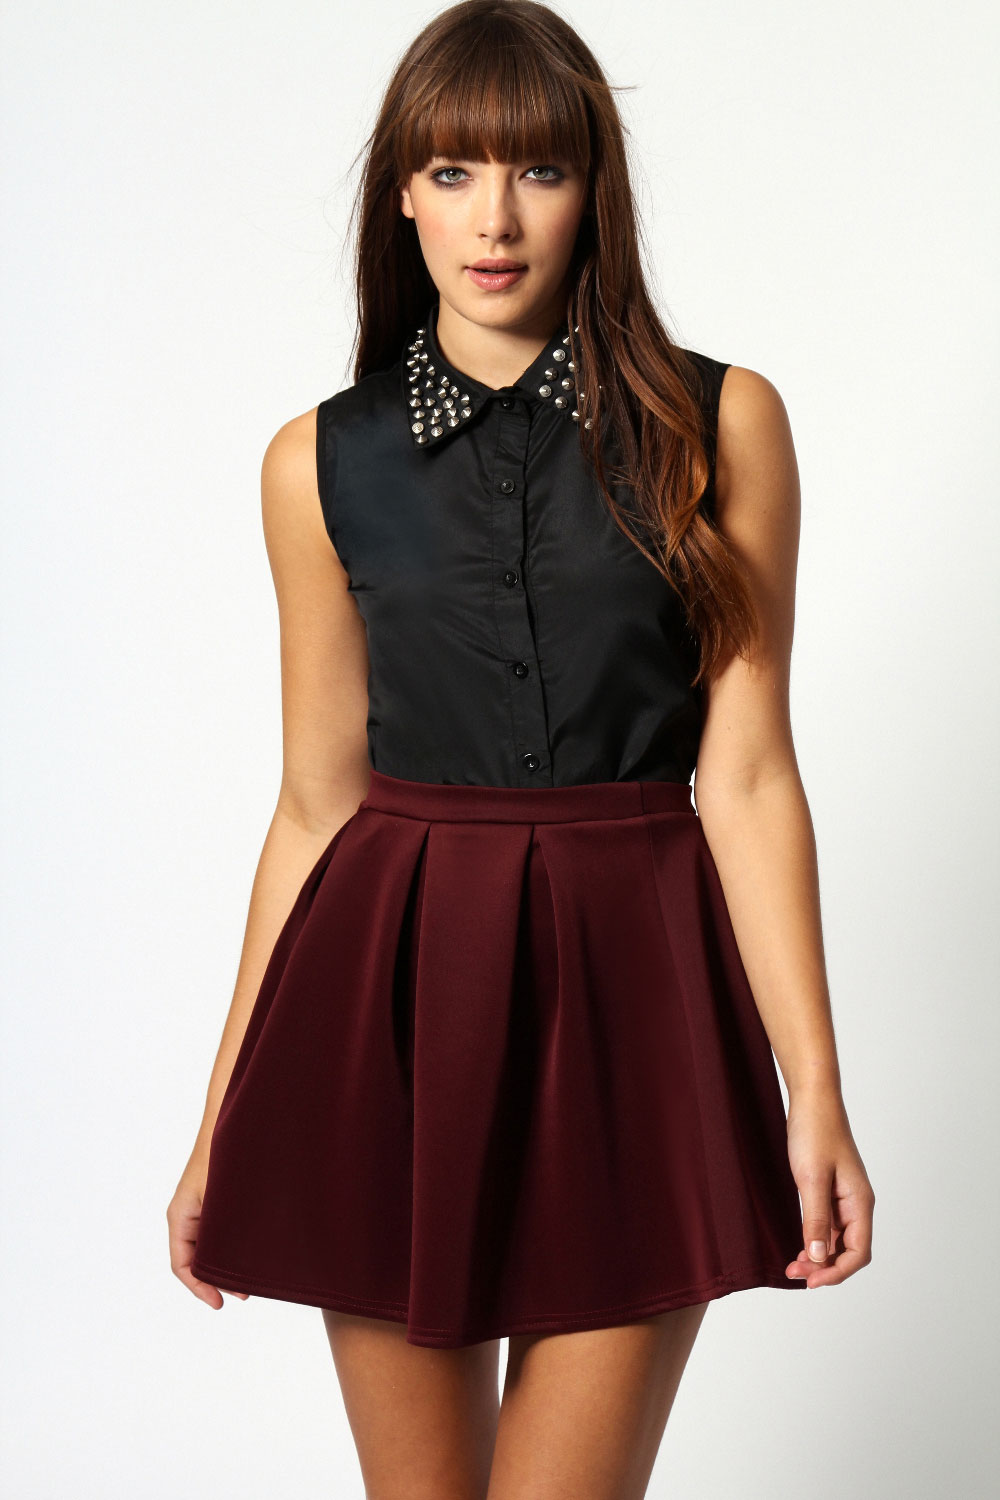 Boohoo-Kate-Box-Pleat-Skater-Hip-Length-Skirt